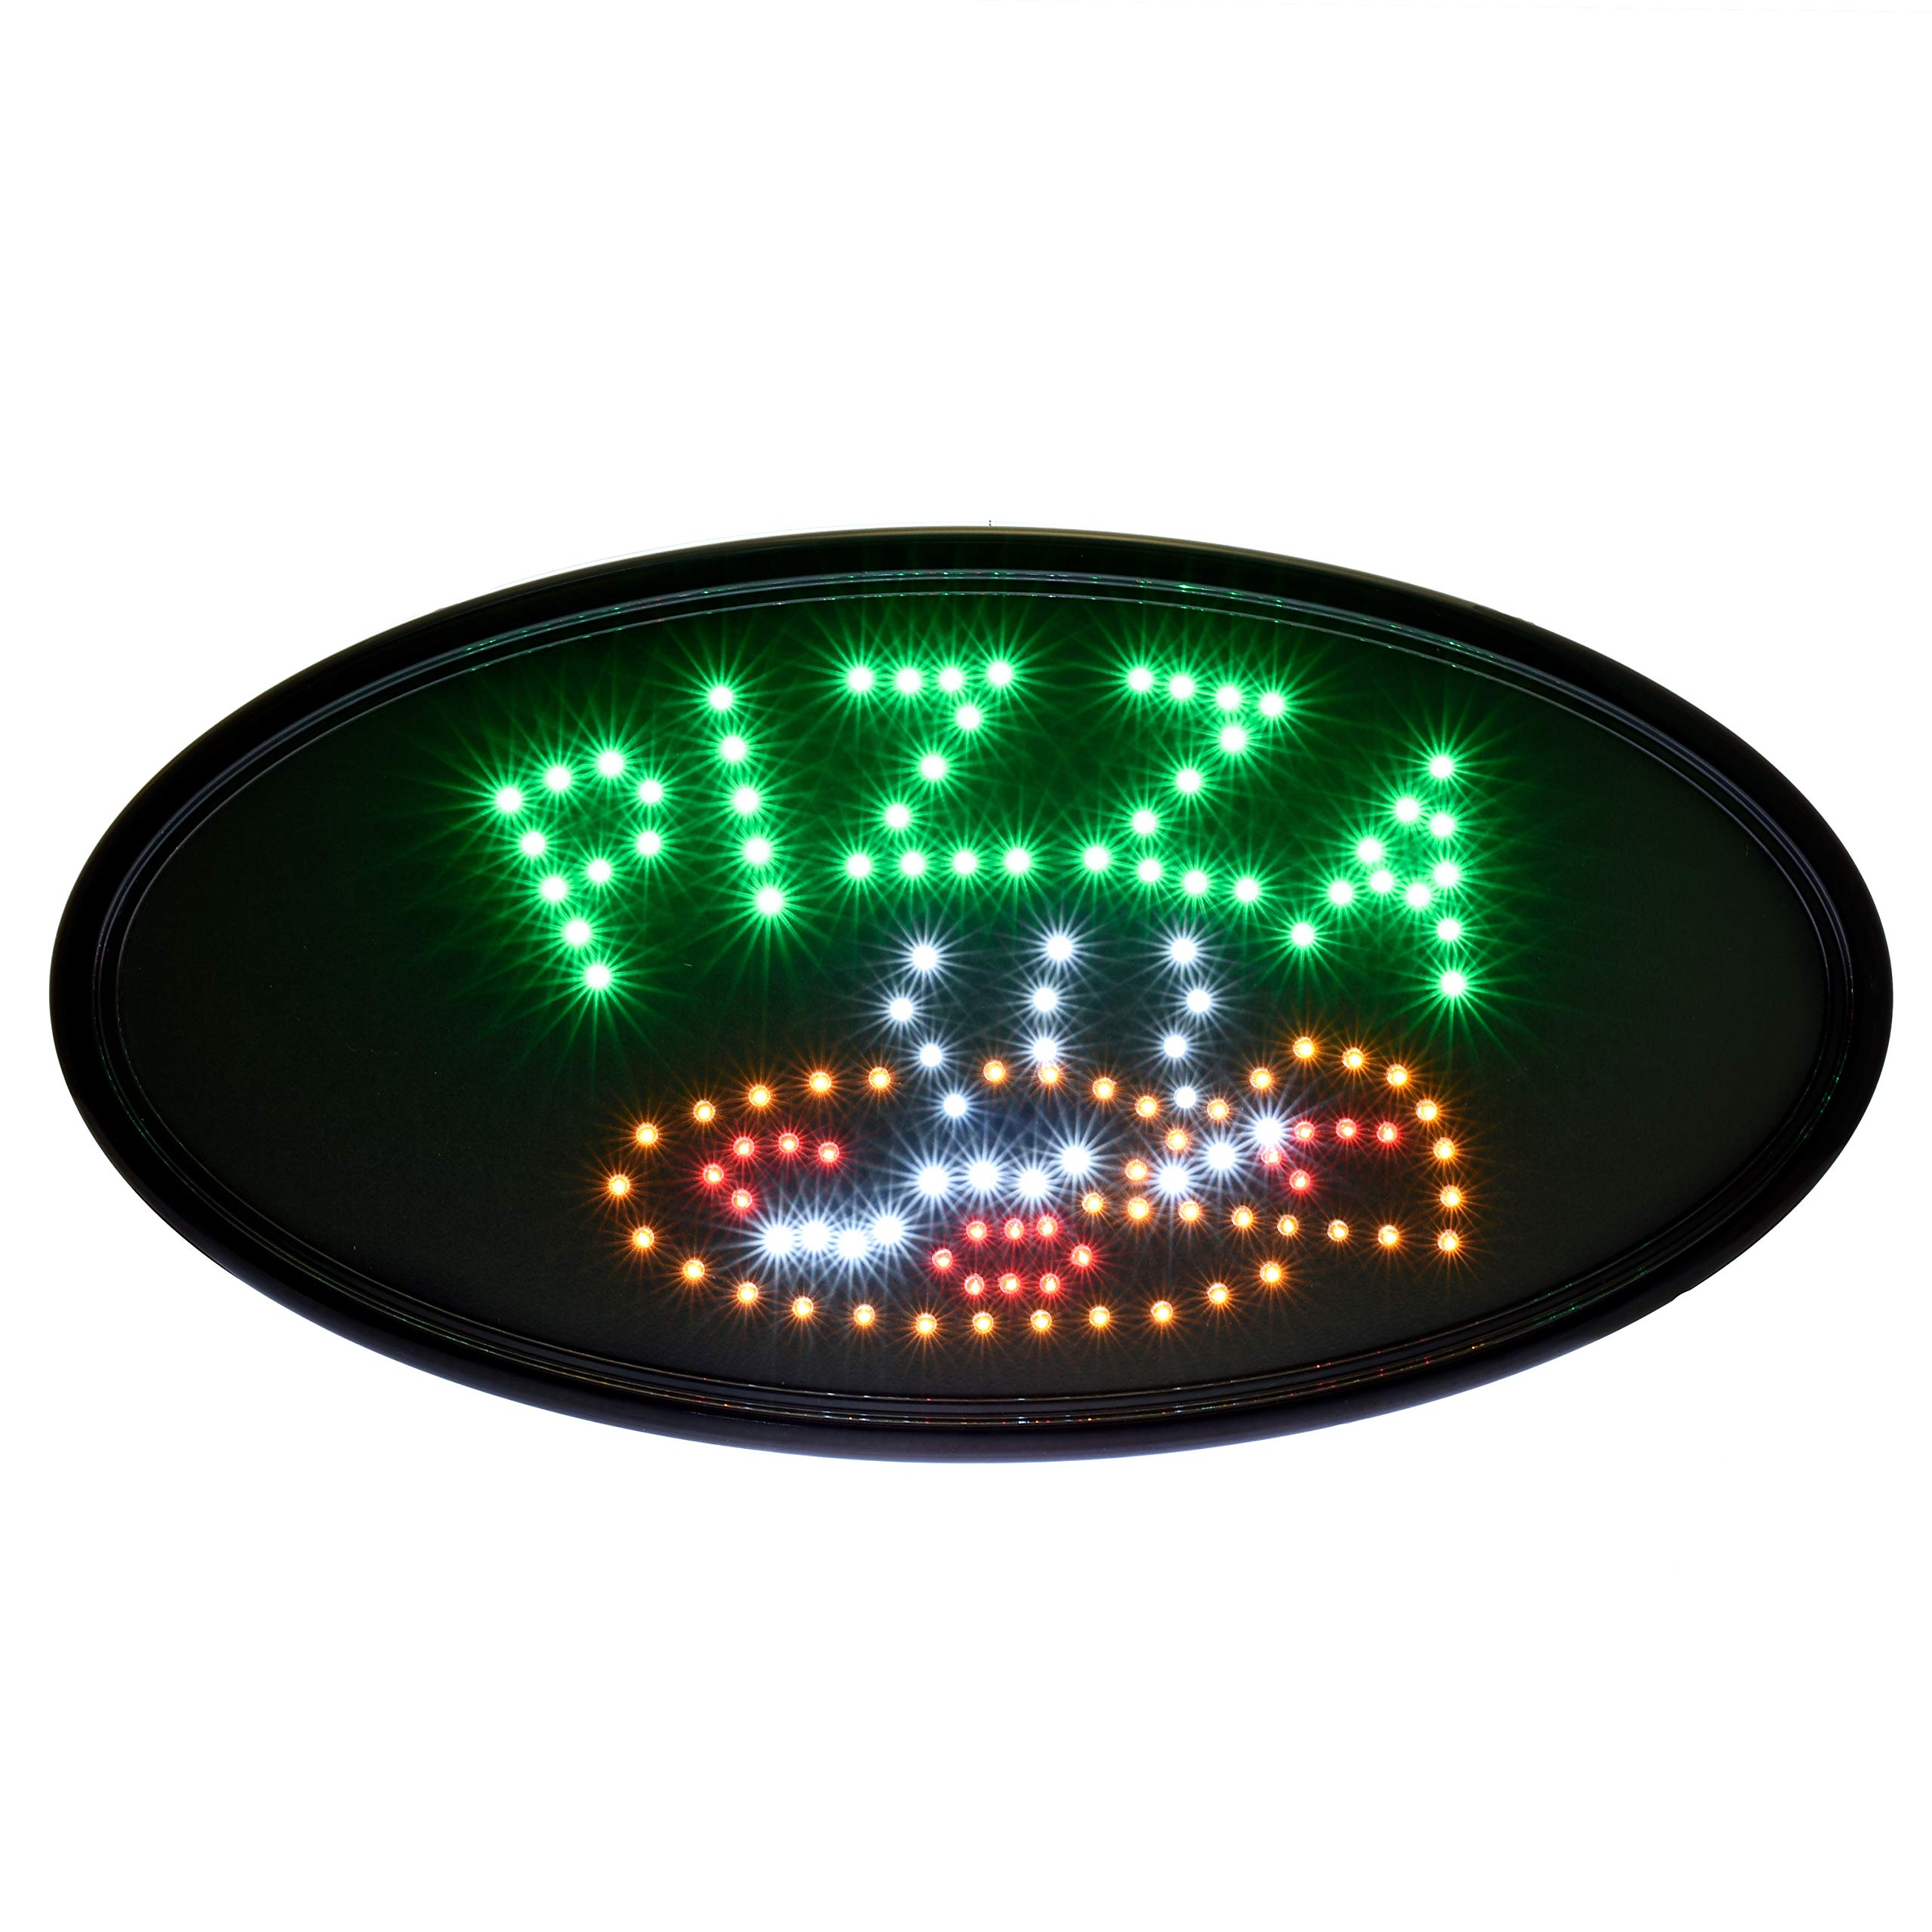 Alpine Industries LED Pizza Sign (Oval) - Commercial Grade Eye Catching Store Sign - Contemporary Look & Customer Attraction - Ideal for Business Use (23'' x 14'') by Alpine Industries